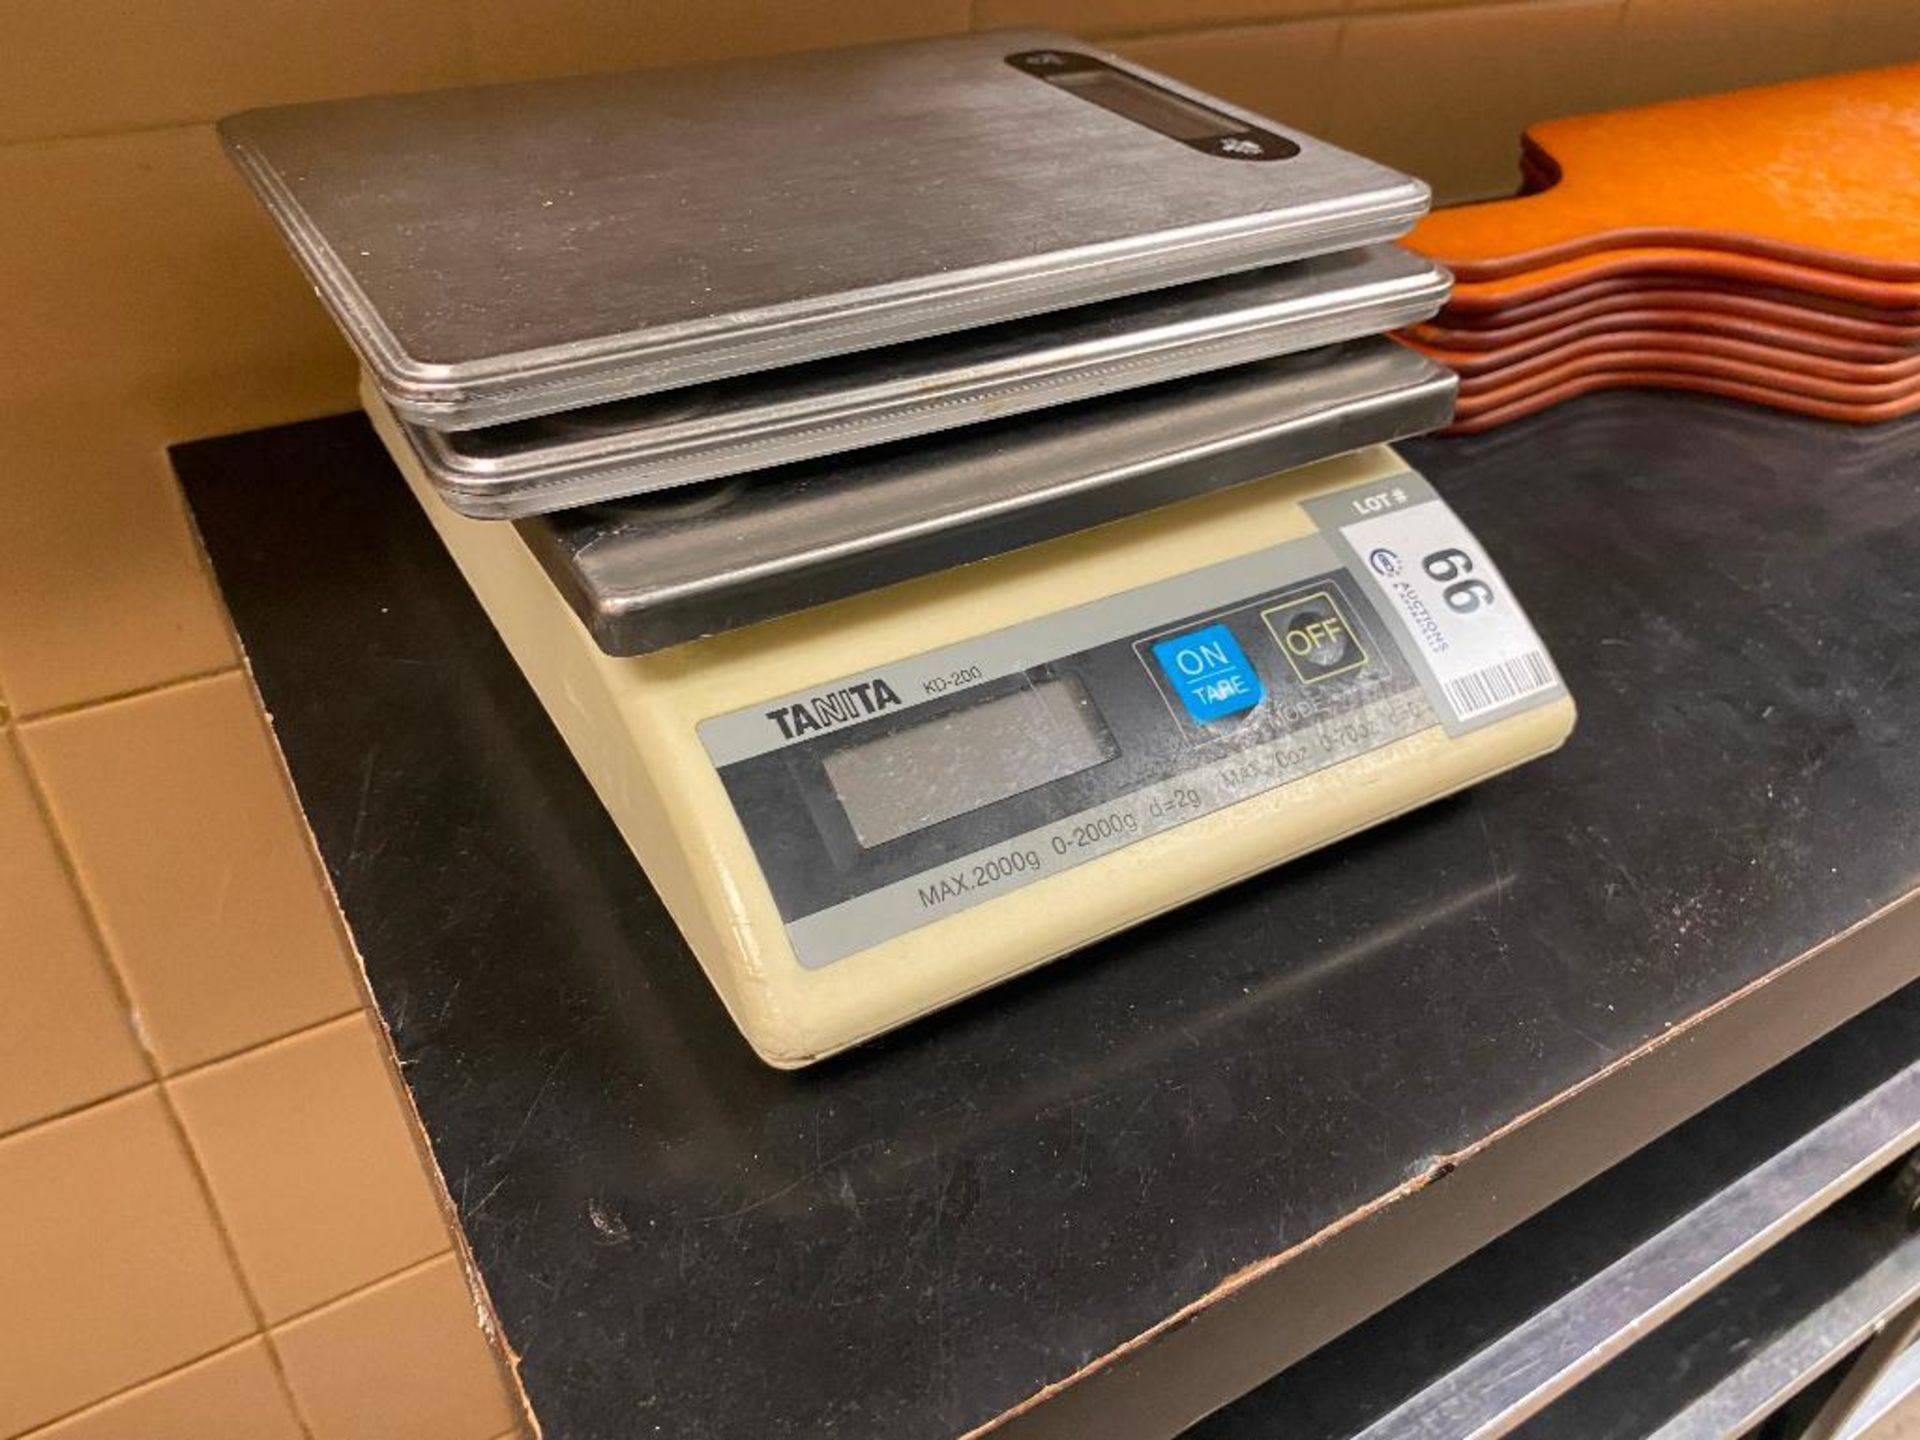 LOT OF (3) ASSORTED KITCHEN SCALES INCLUDING (1) TANITA KD-200